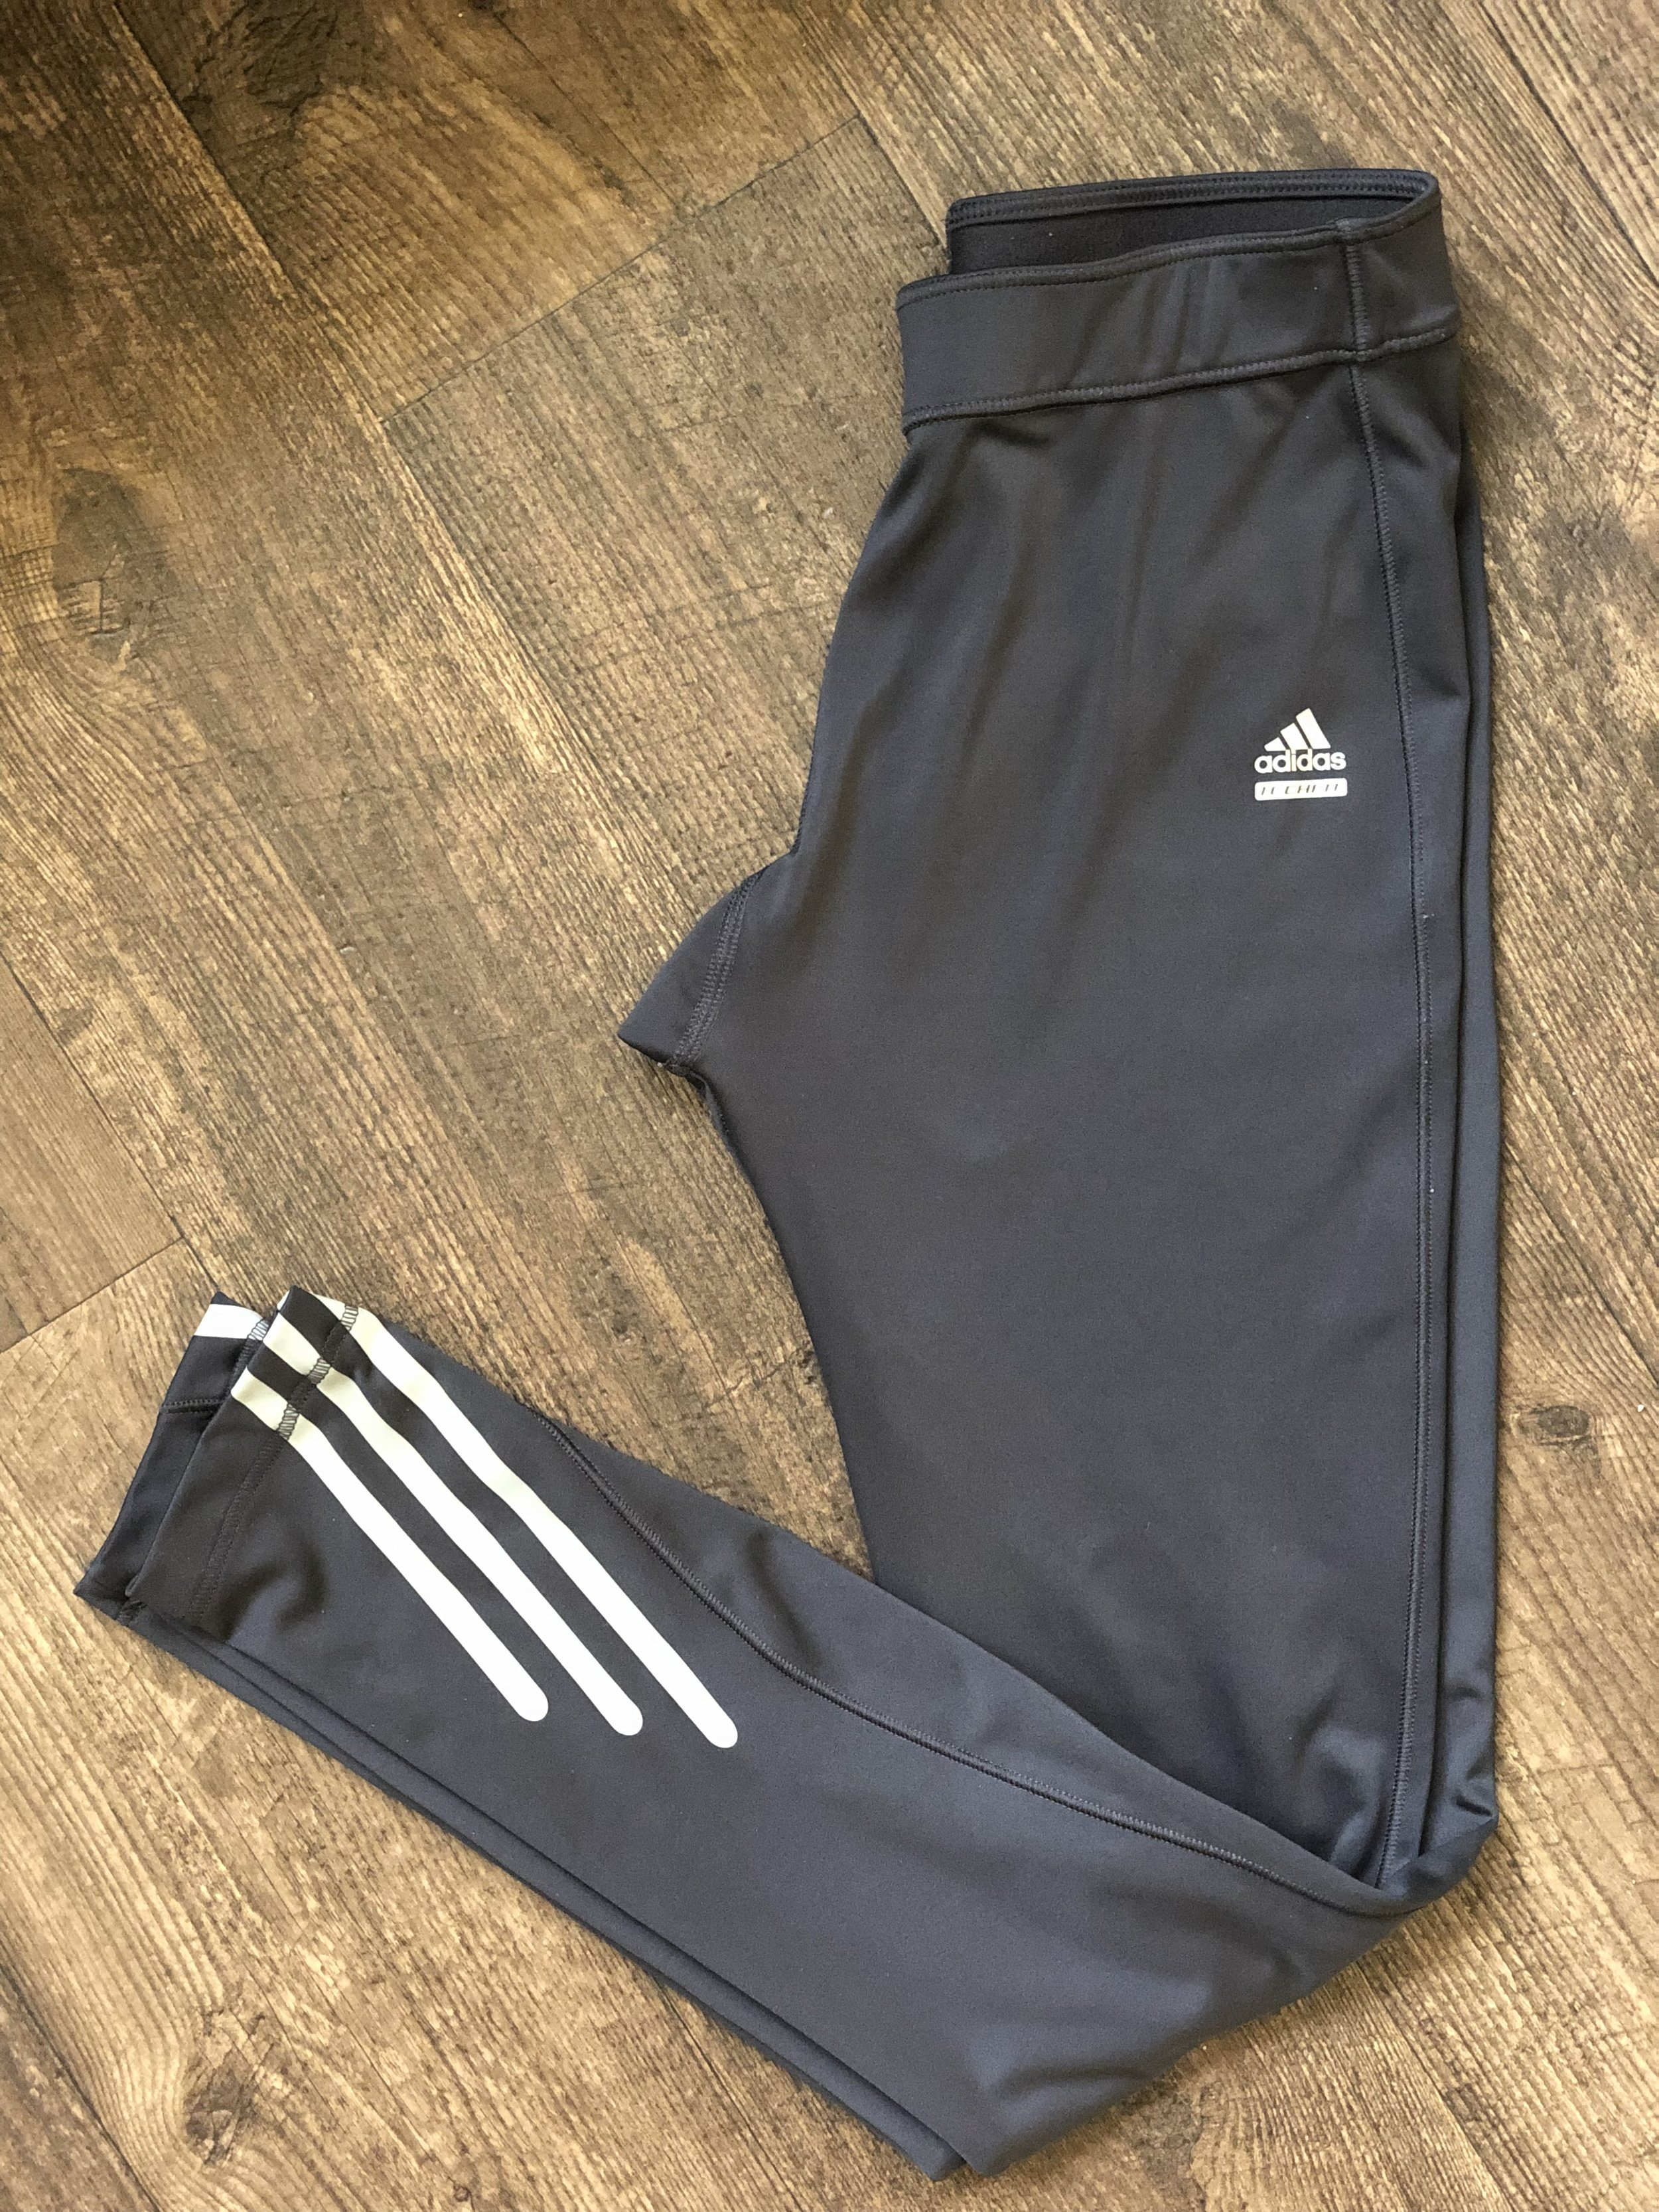 Adidas Running Pant Mid Rise // $20